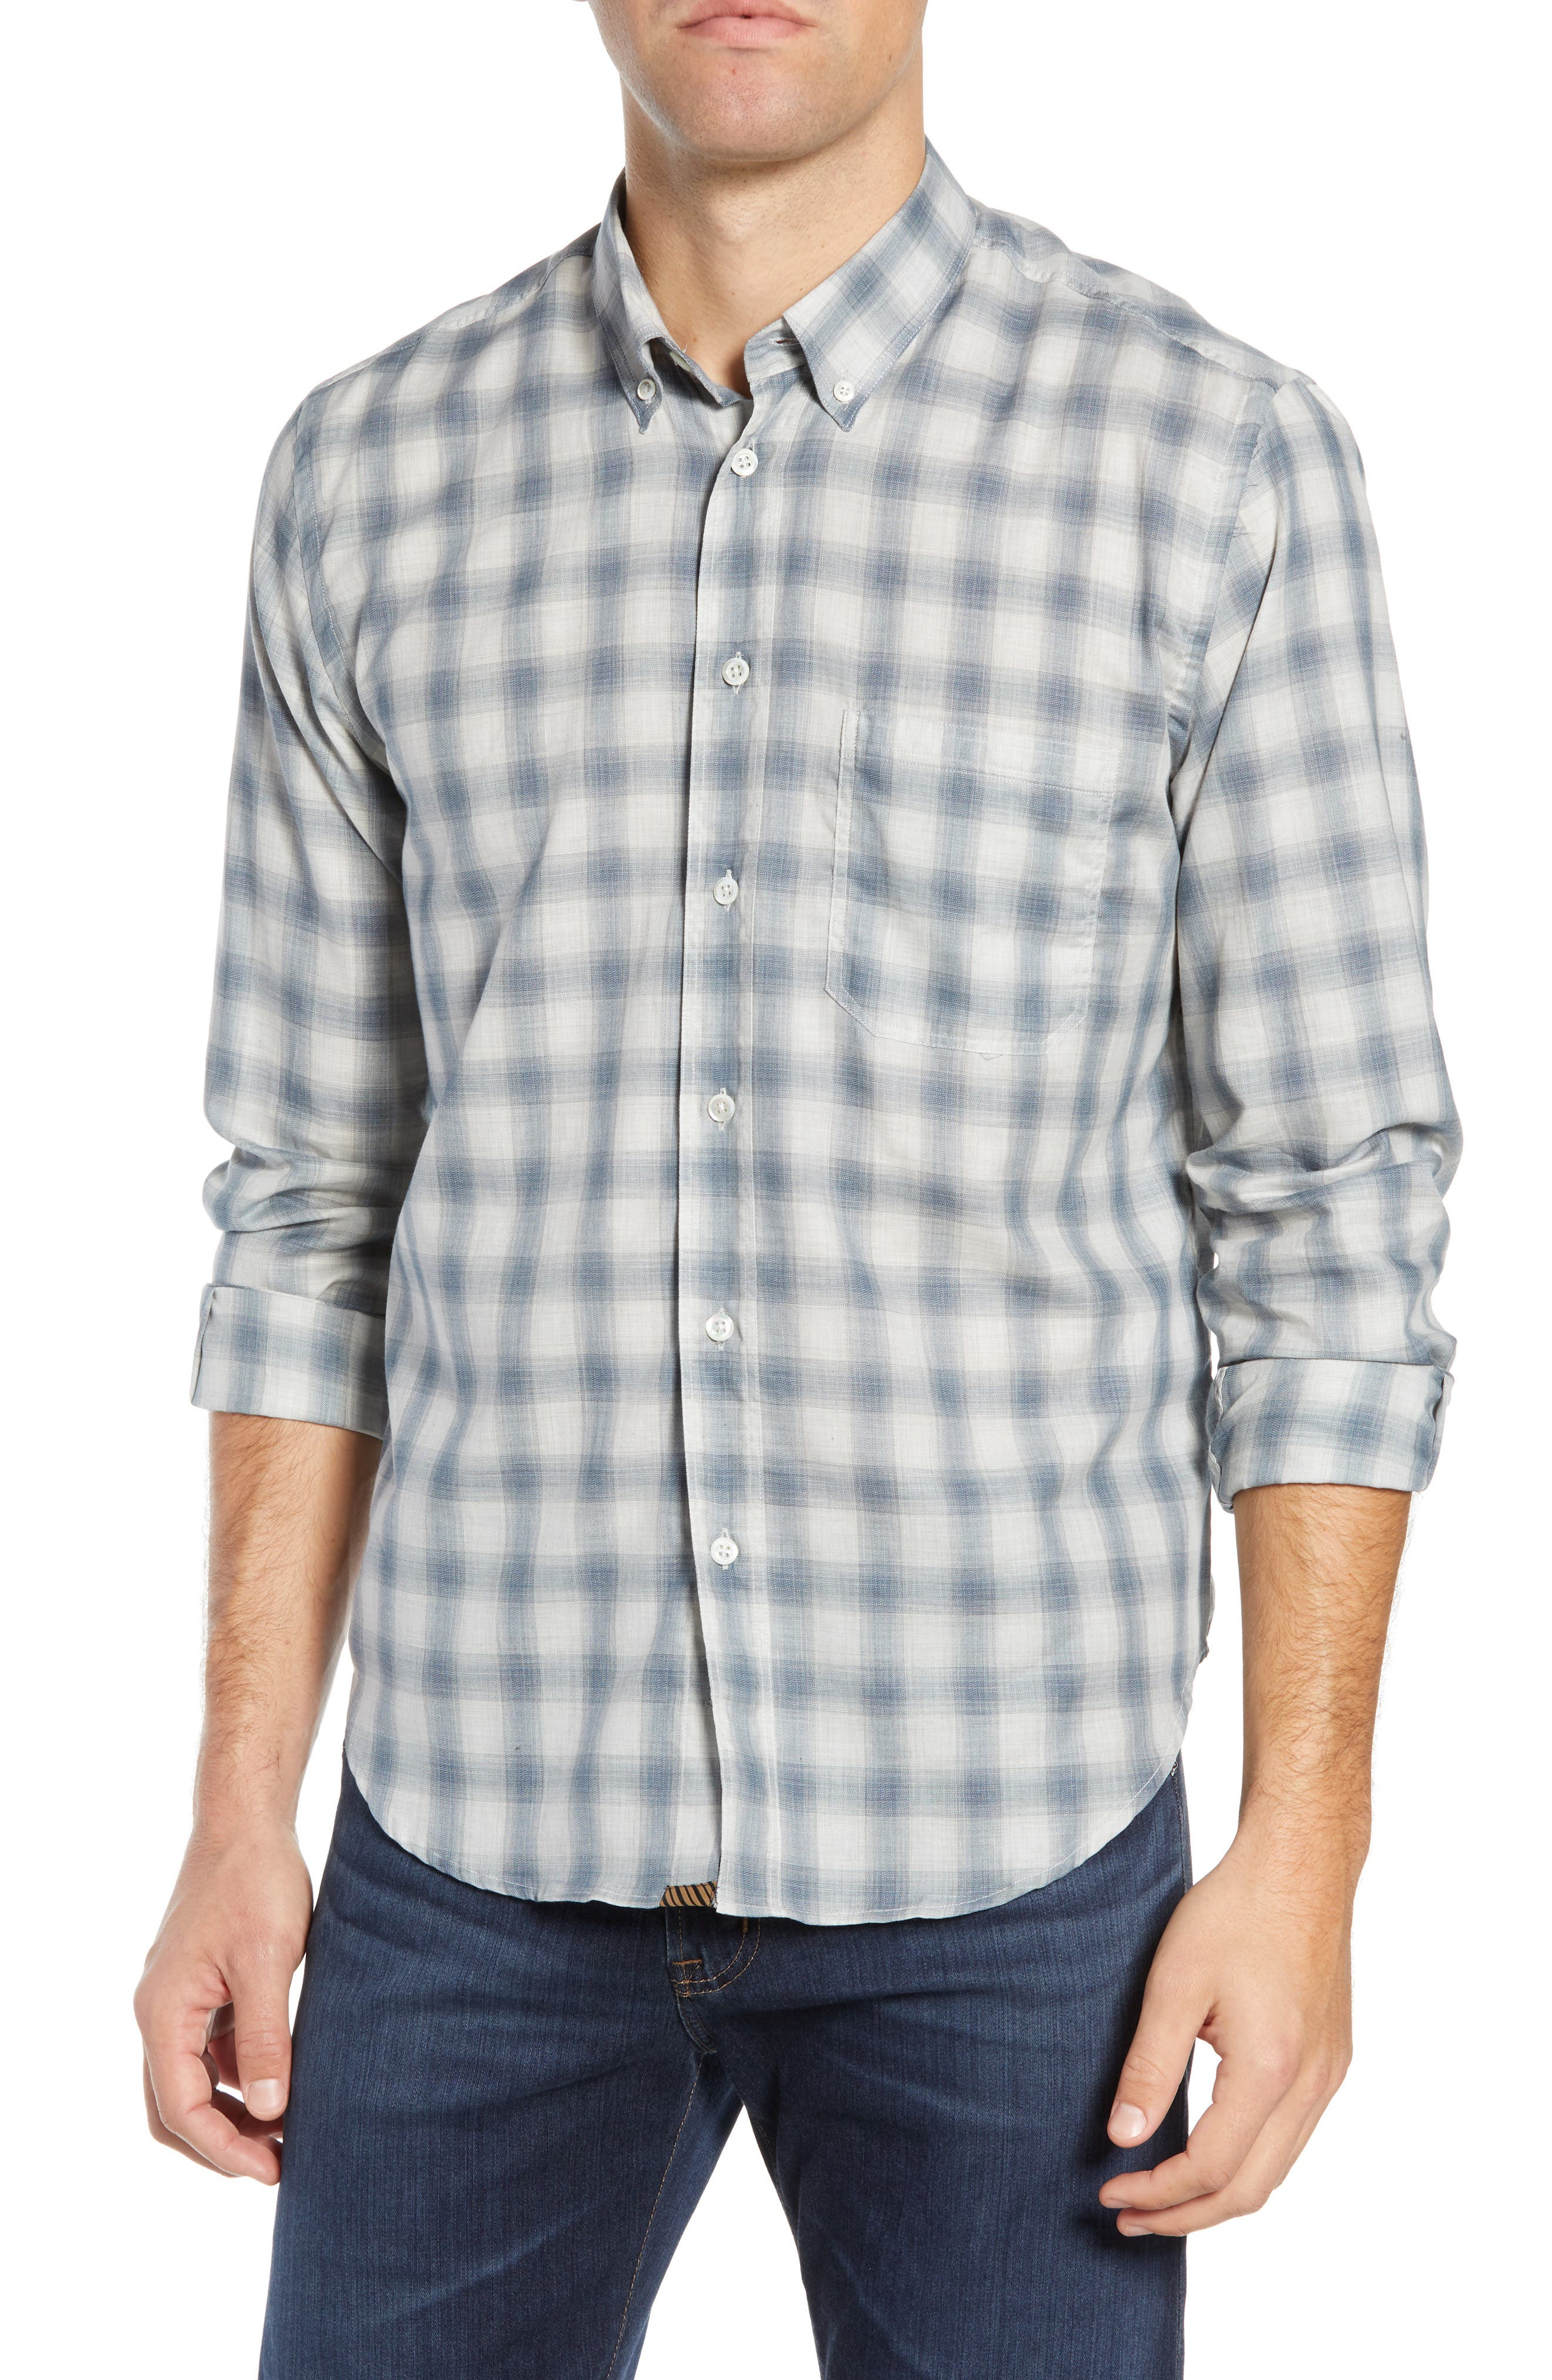 Tuscumbia Regular Fit Pattern Sport Shirt,                         Main,                         color, BLUE/ GREY